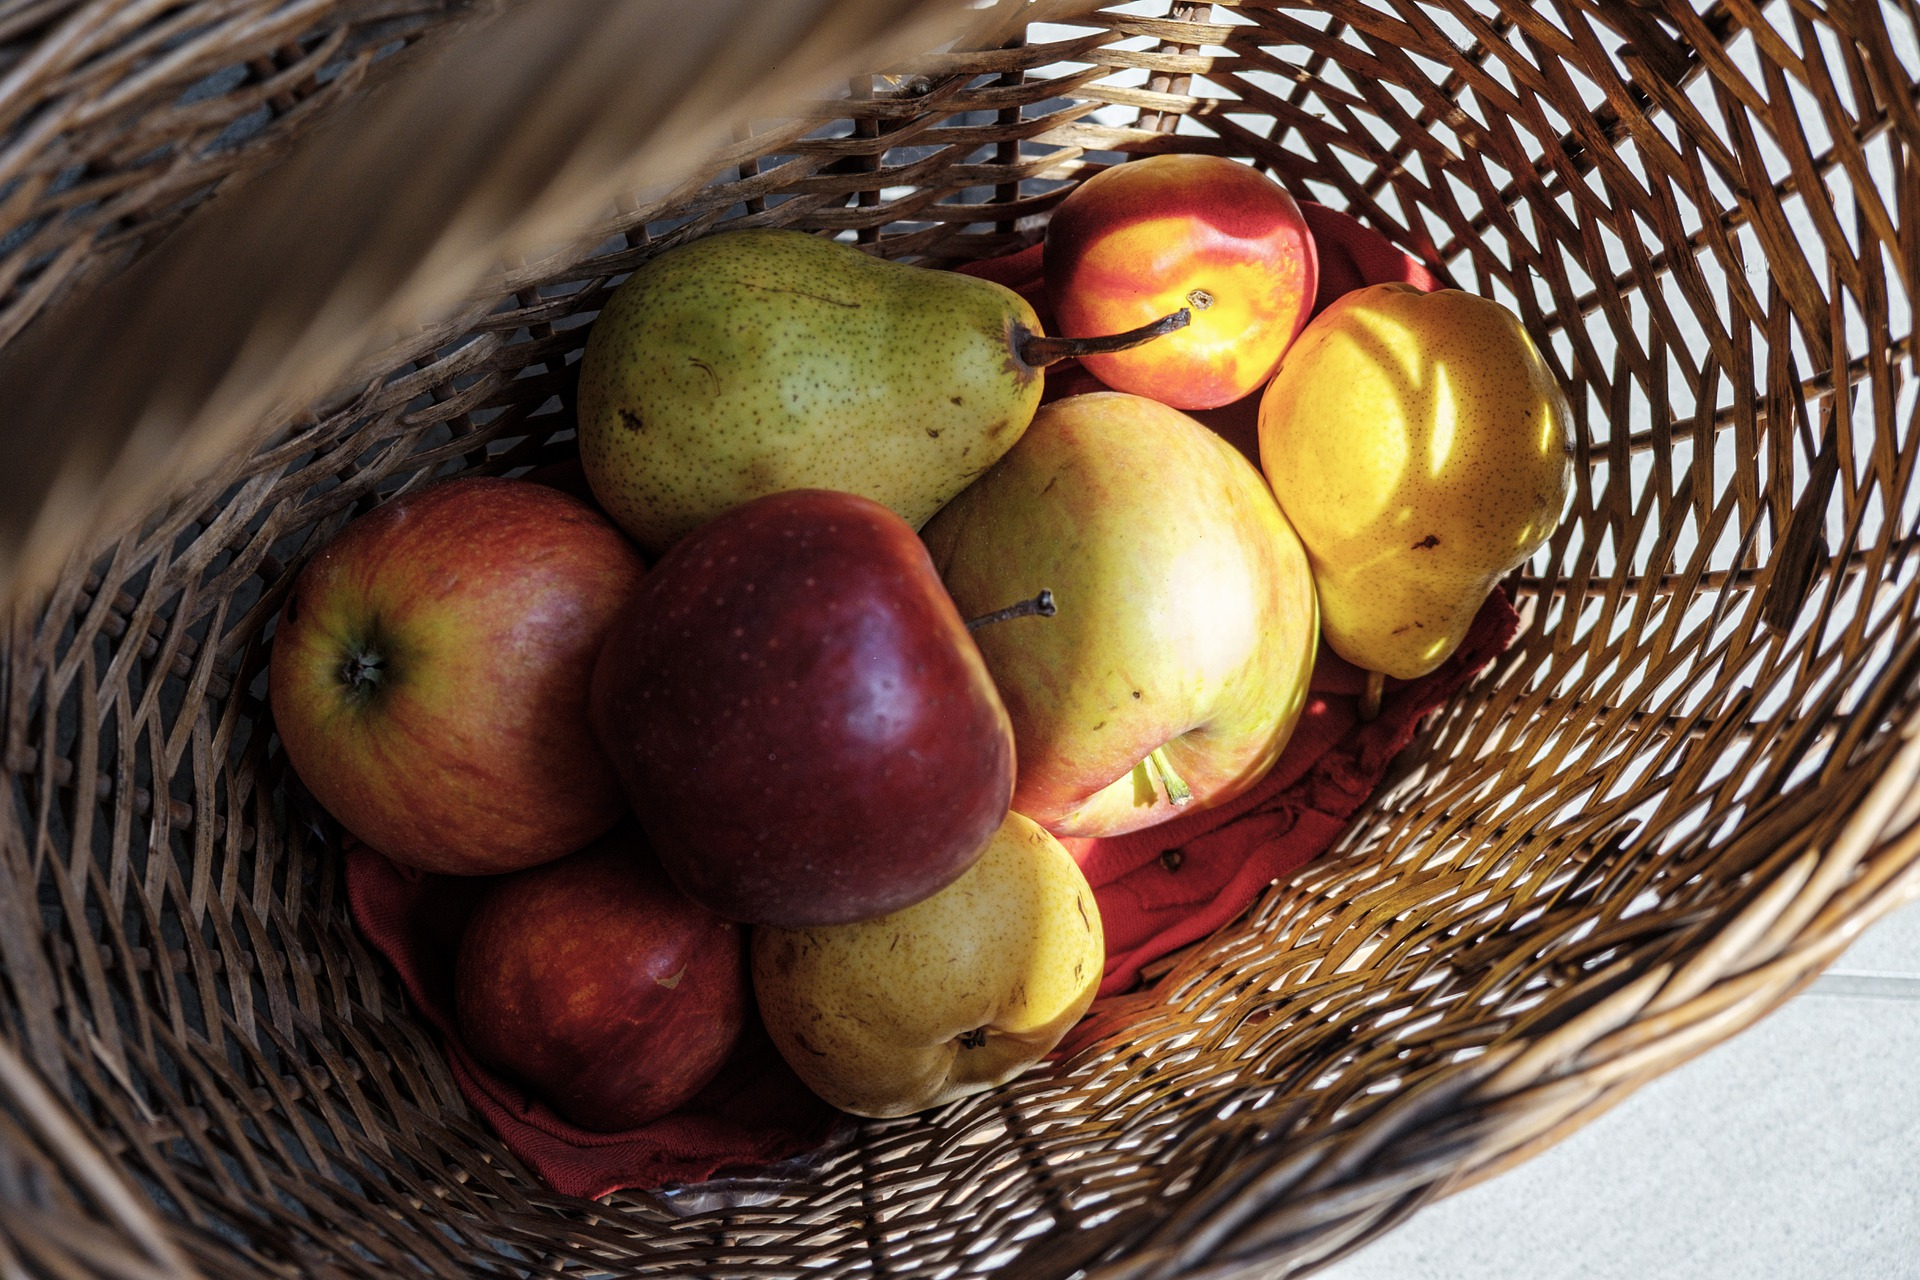 basket with apples and pears in it